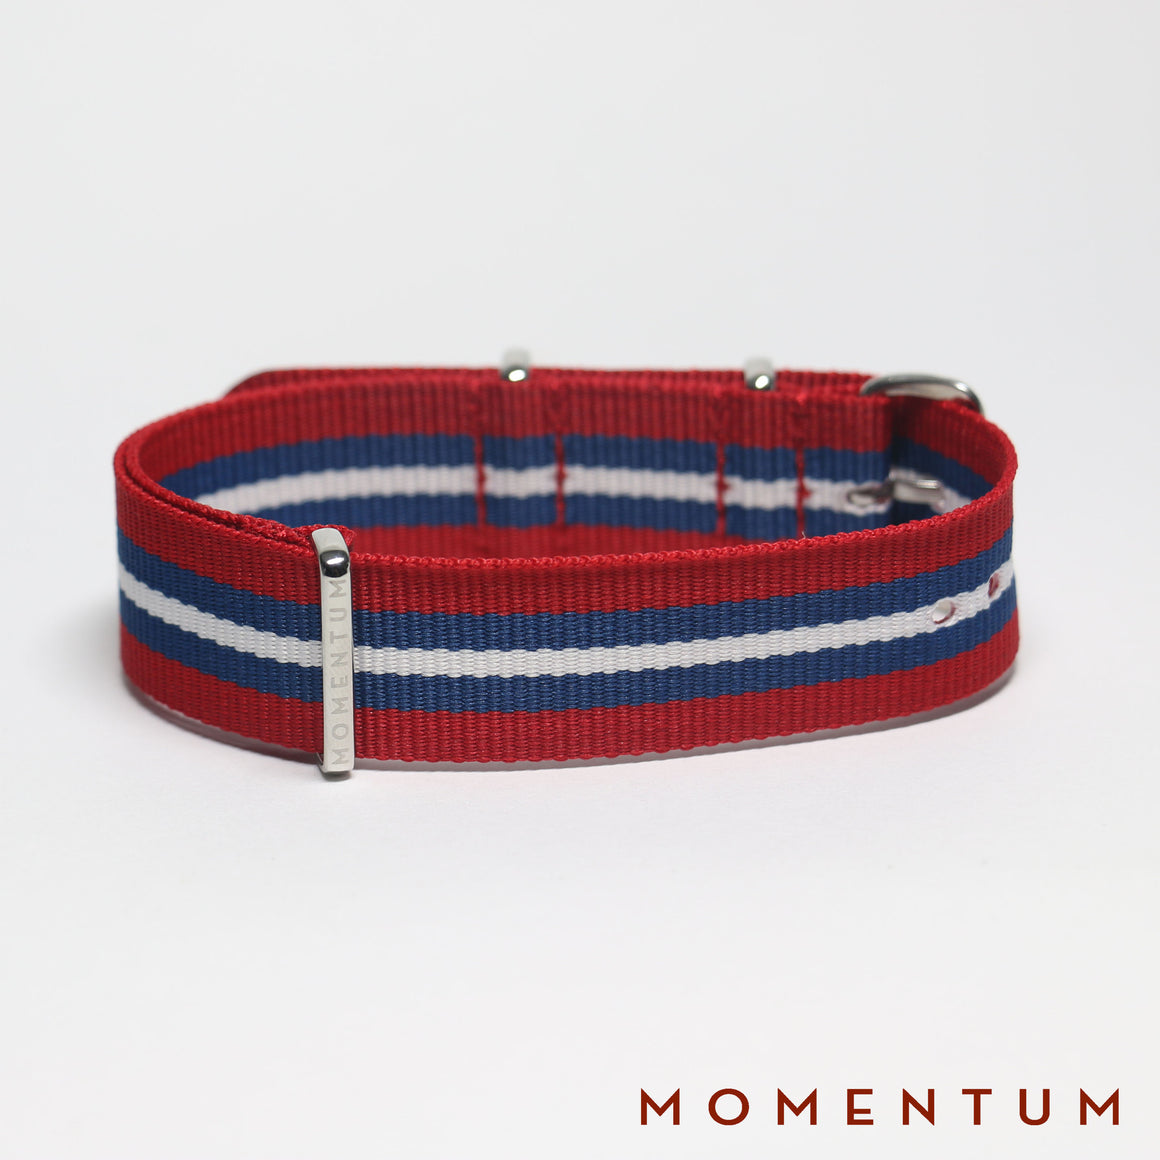 Nato Strap Red - Blue & White Striped - Momentum Dubai